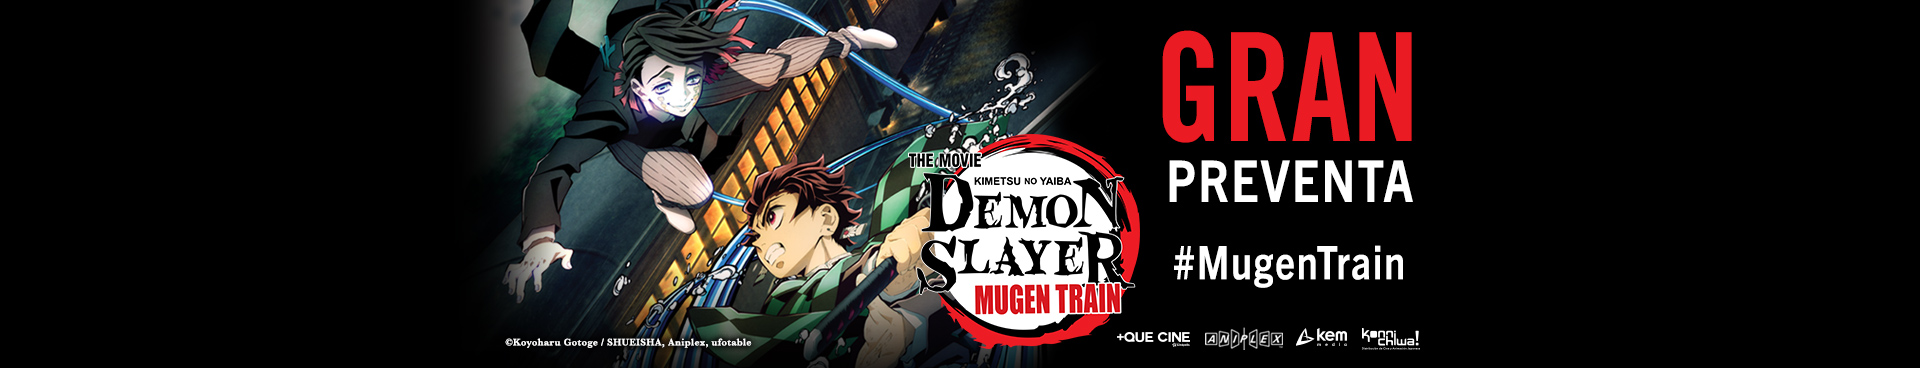 Preventa: Demon Slayer Mugen Train